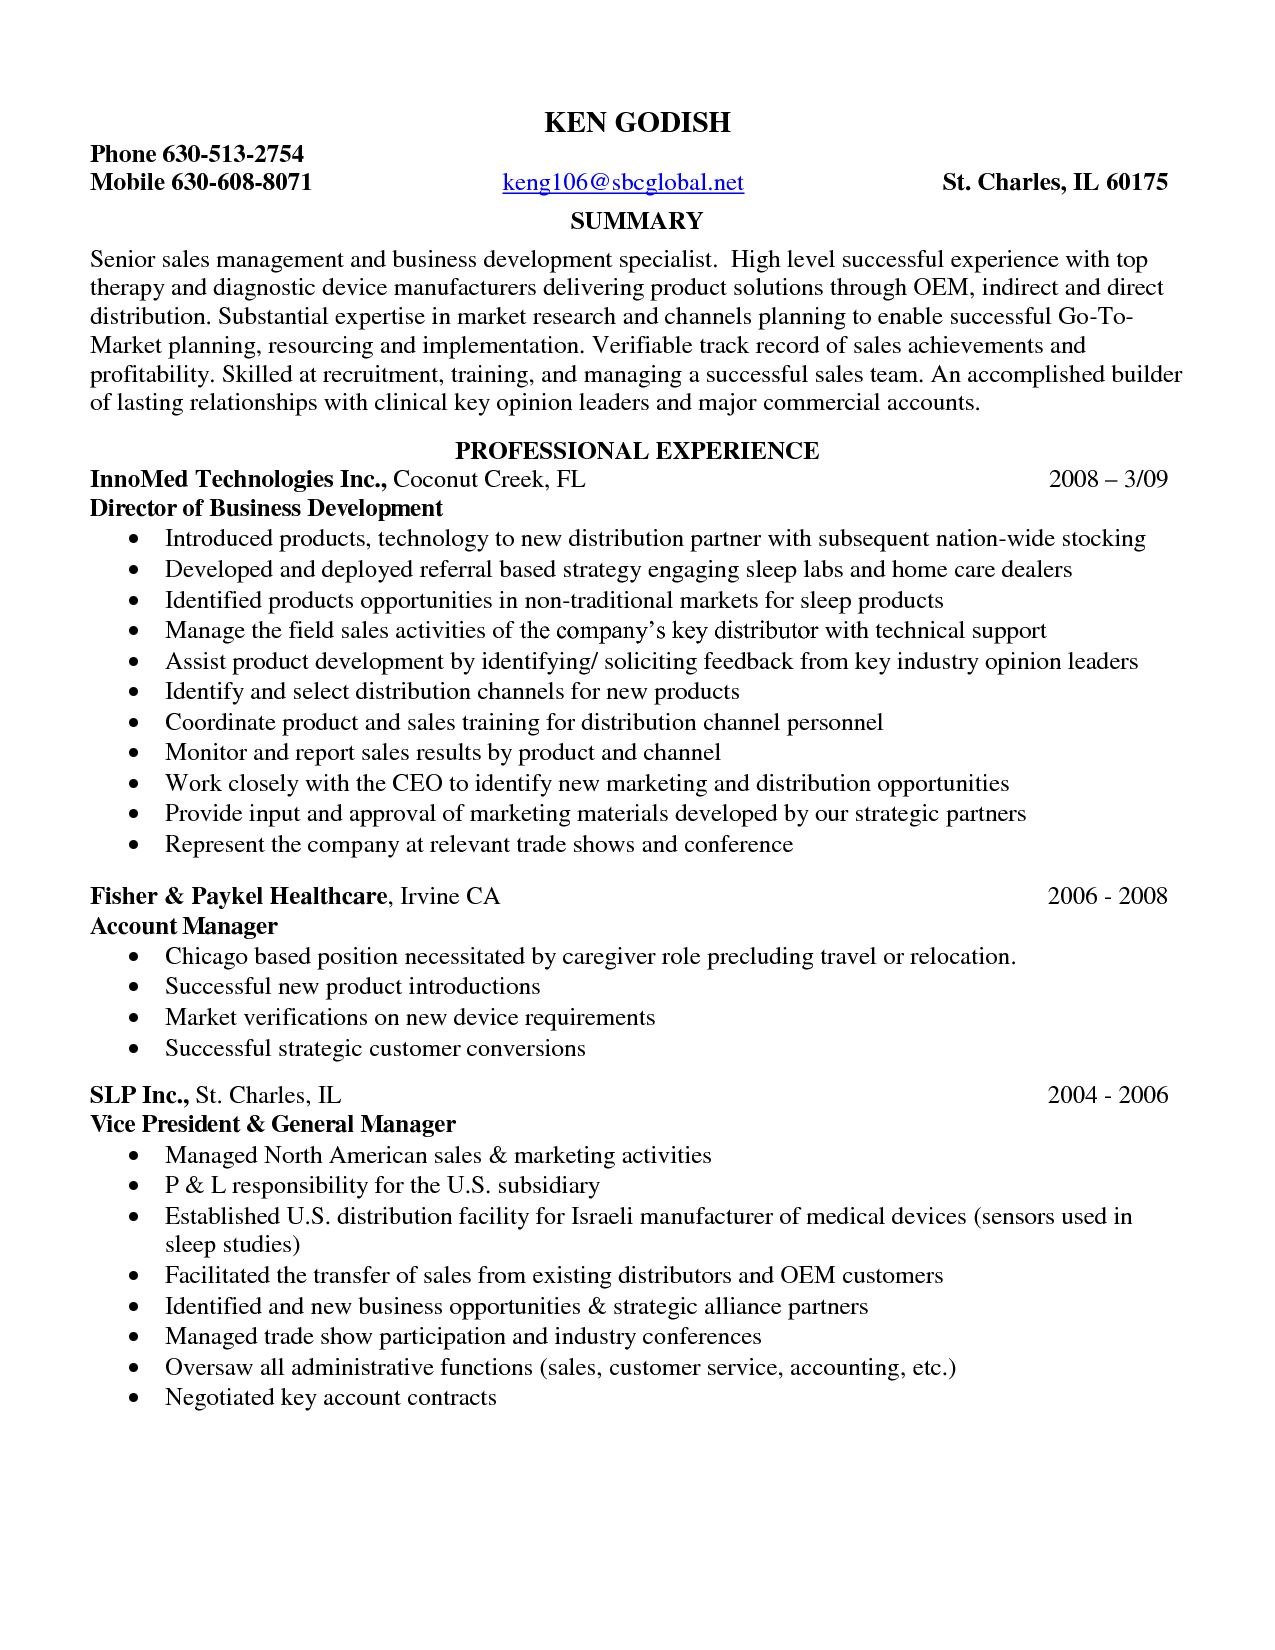 sample resume entry level pharmaceutical s sample resume entry sample resume entry level pharmaceutical s sample resume entry level pharmaceutical s entry level pharmaceutical objective